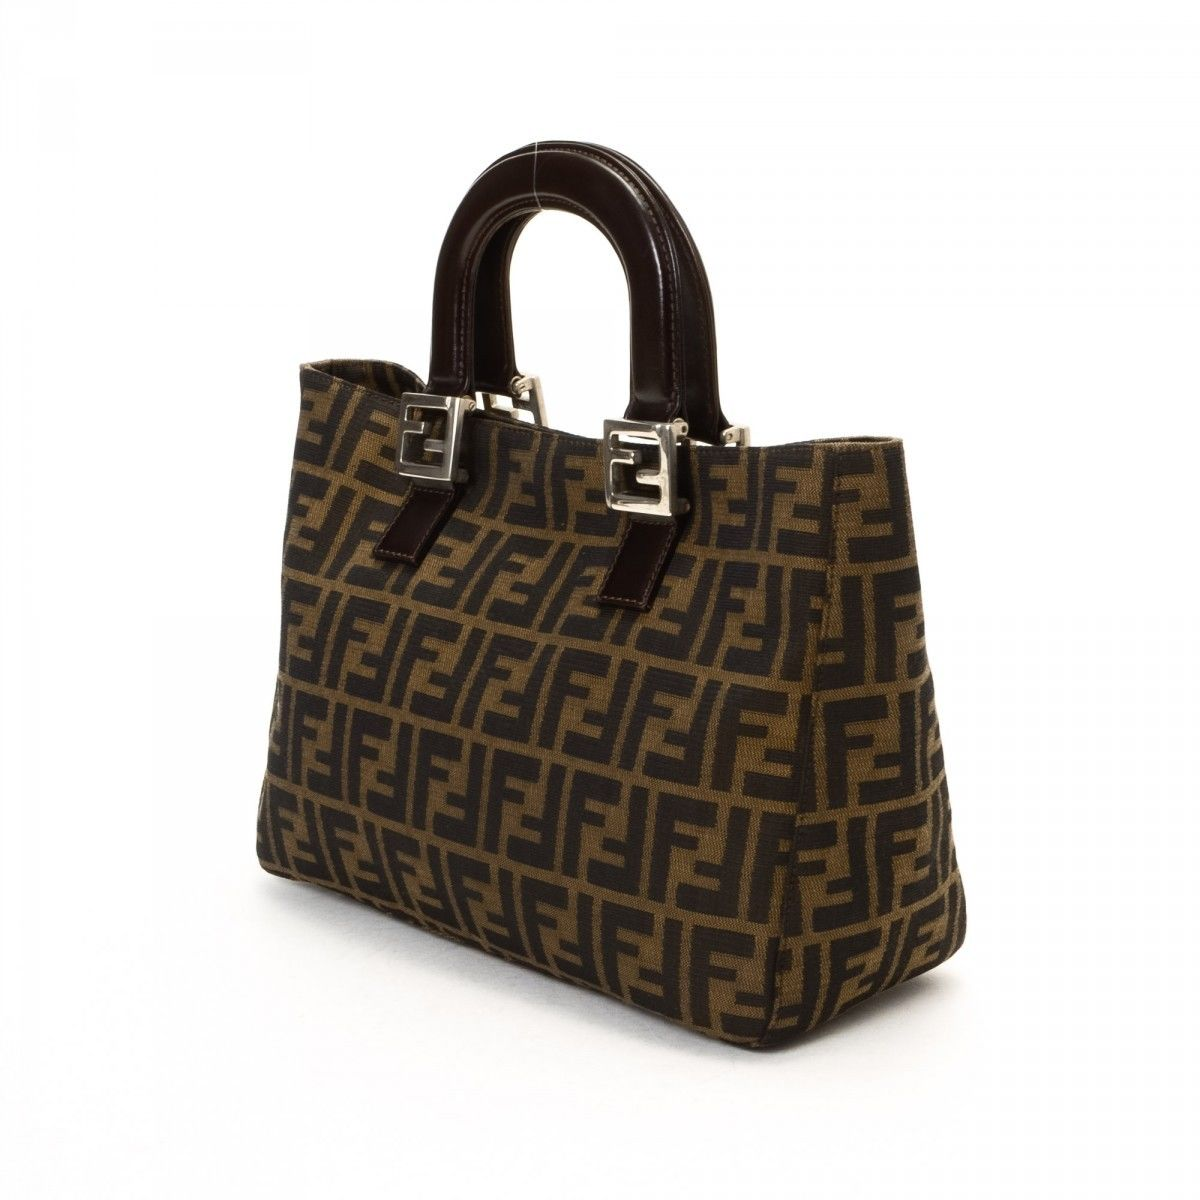 acf232479c09 Vintage Fendi Brown Soft Tote | Stanford Center for Opportunity ...